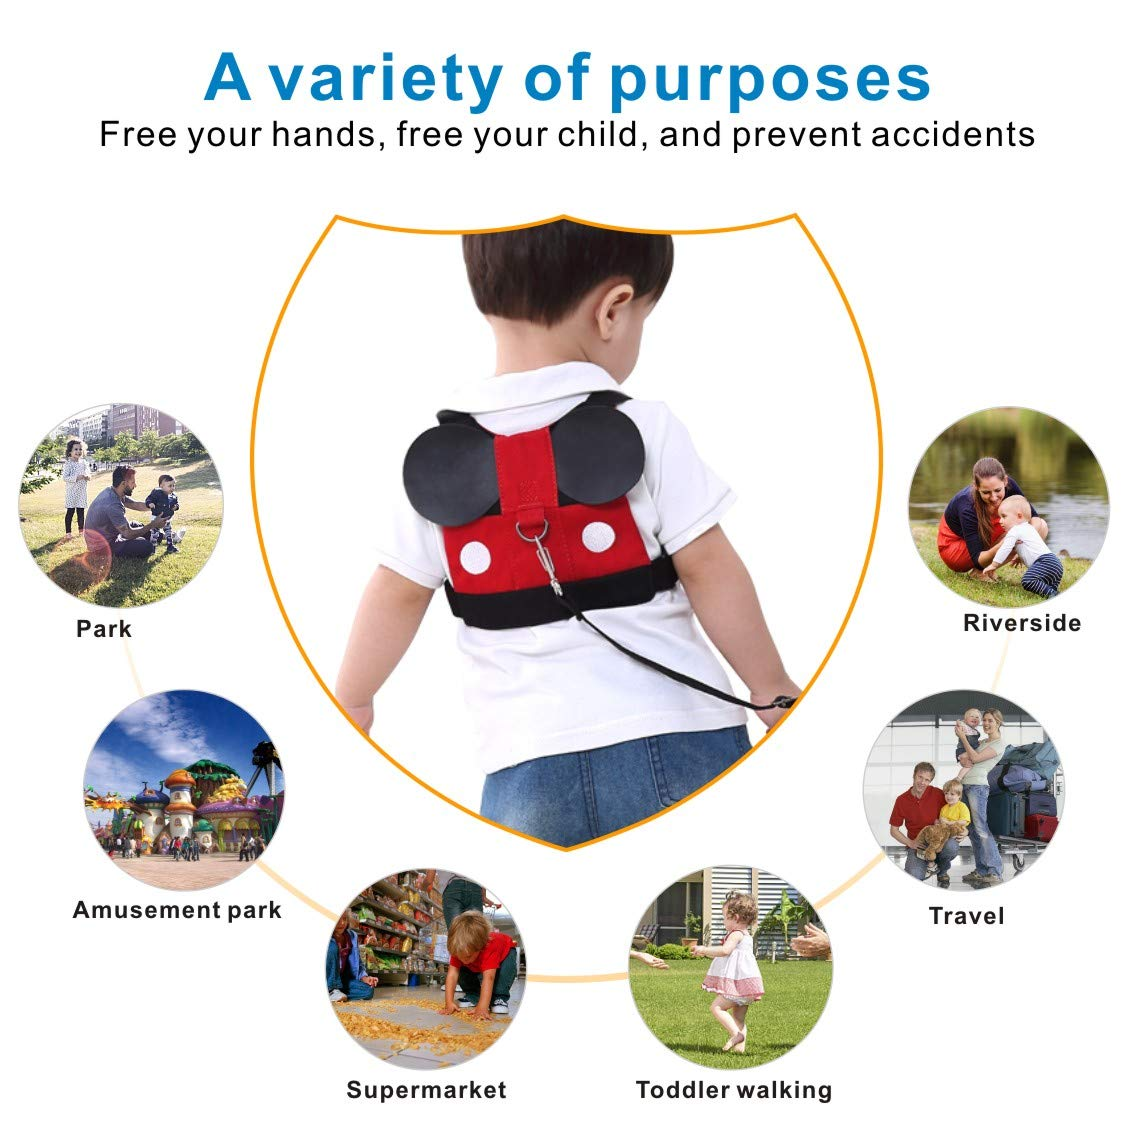 Idefair Kids Harness Kids Walking Leash Safety,Baby Anti Lost Safety Harness,Toddler Harness Safety Leashes for 1-5 Years Old Boys and Girls - Red by Idefair (Image #2)